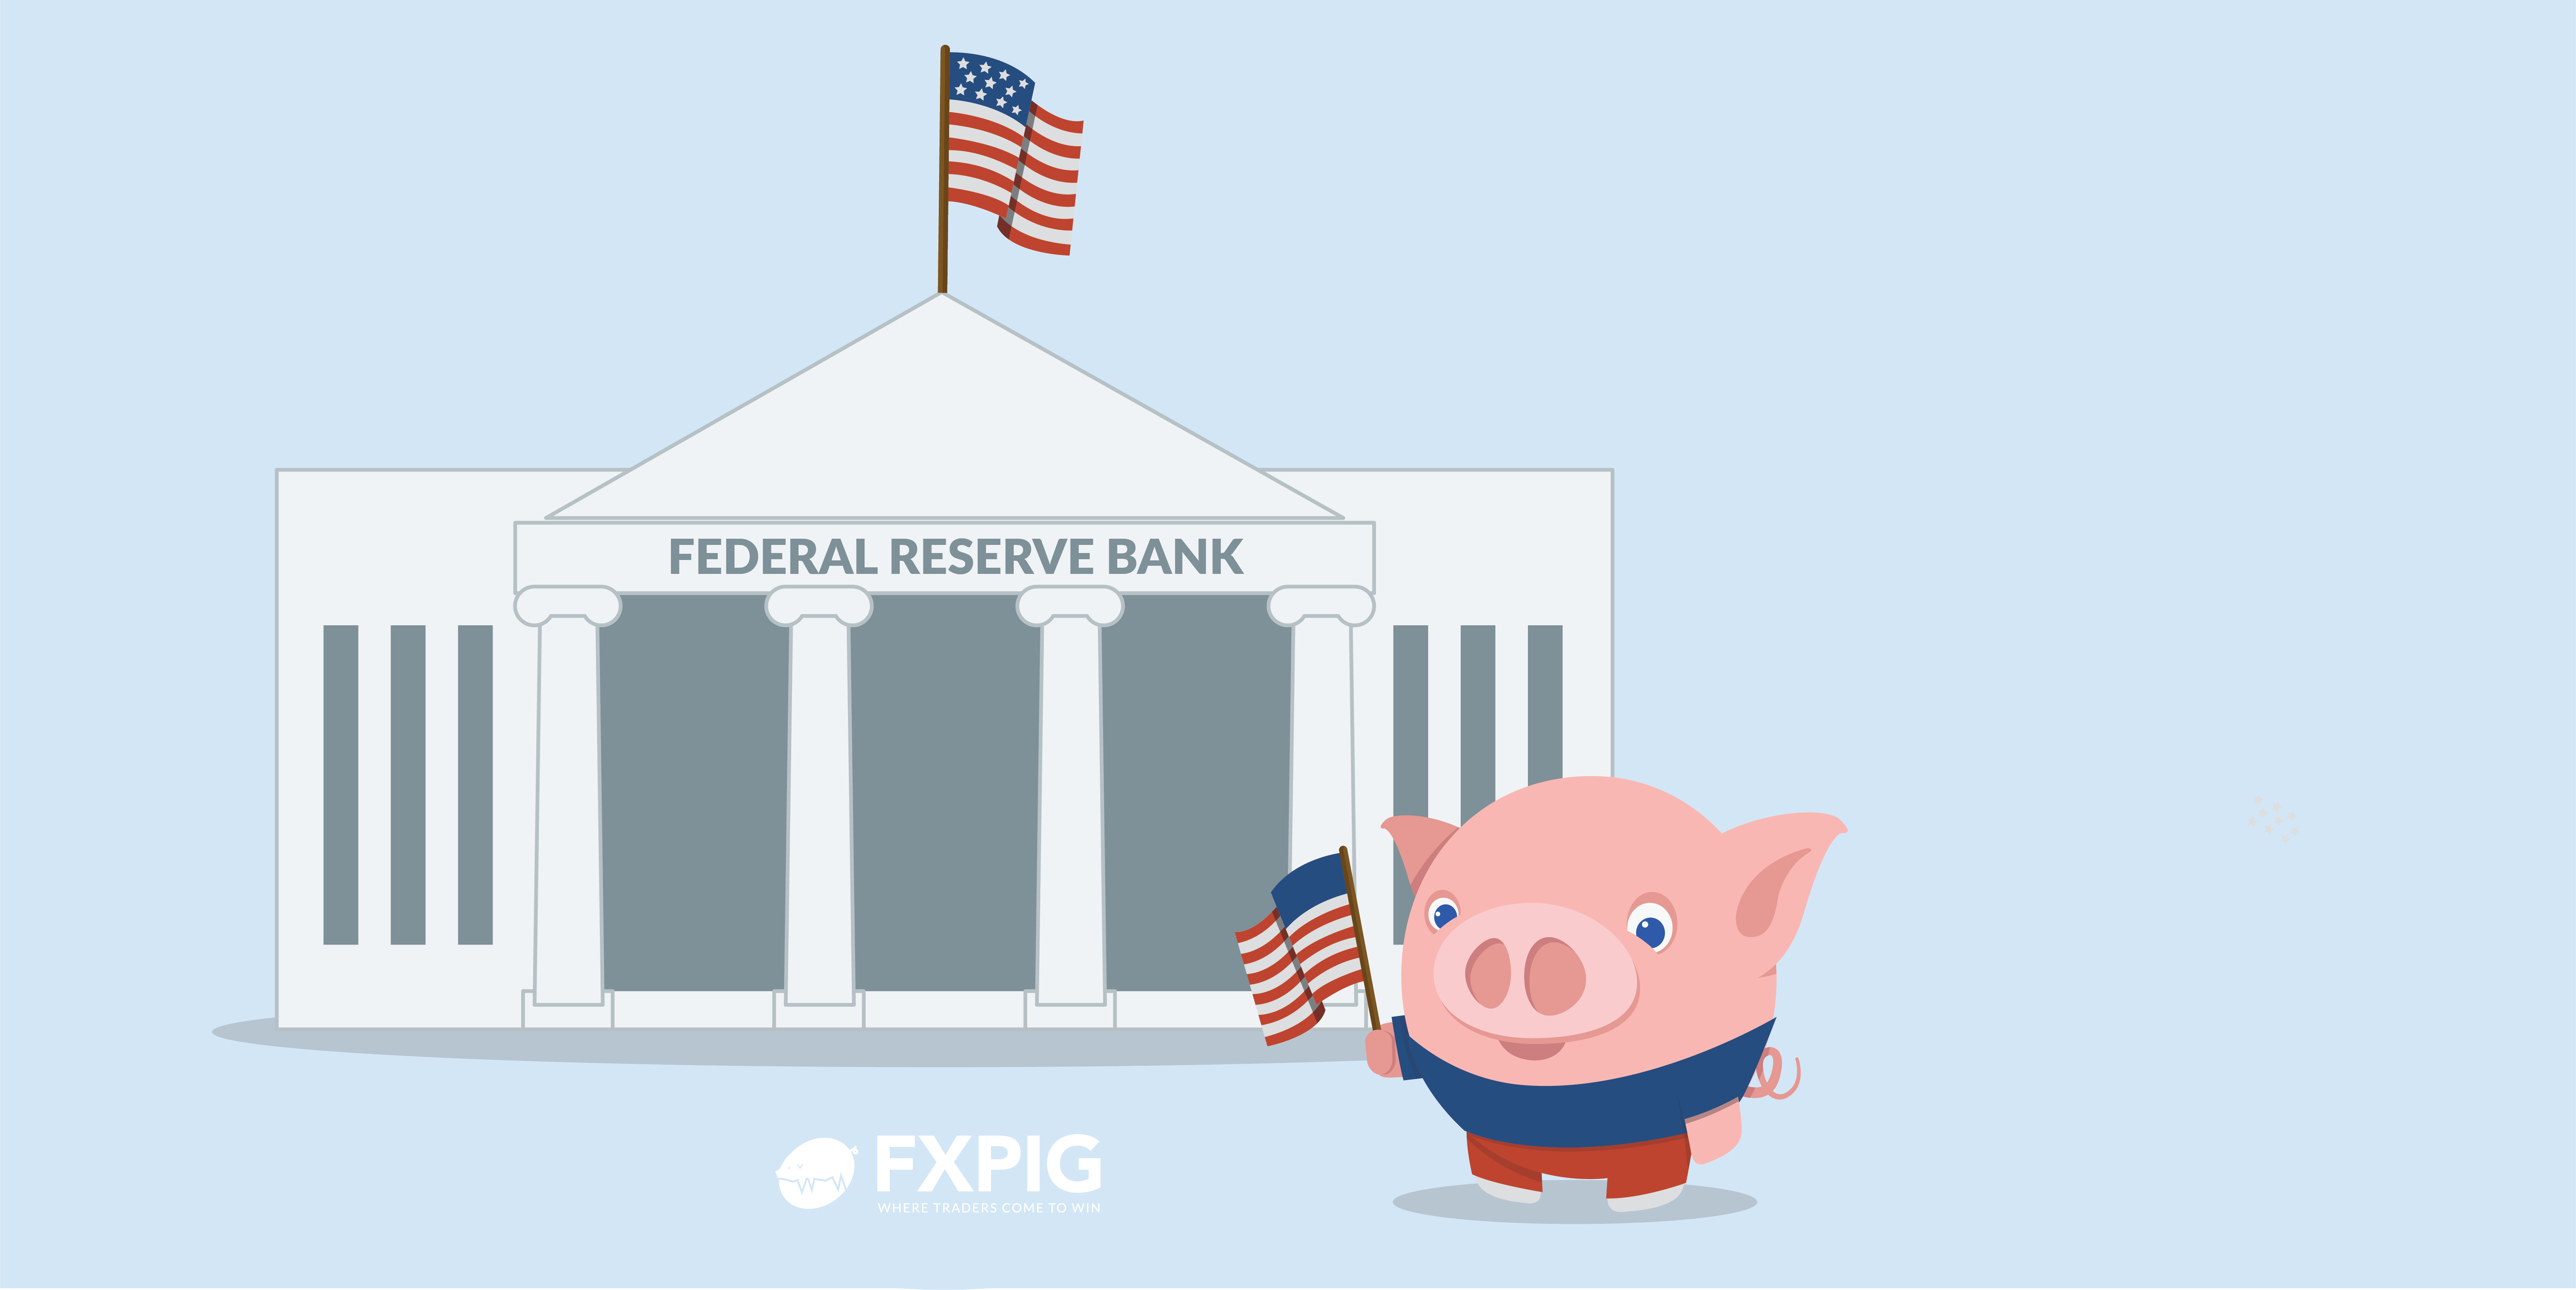 FOREX_FED-Powell-supporting-stability_FXPIG